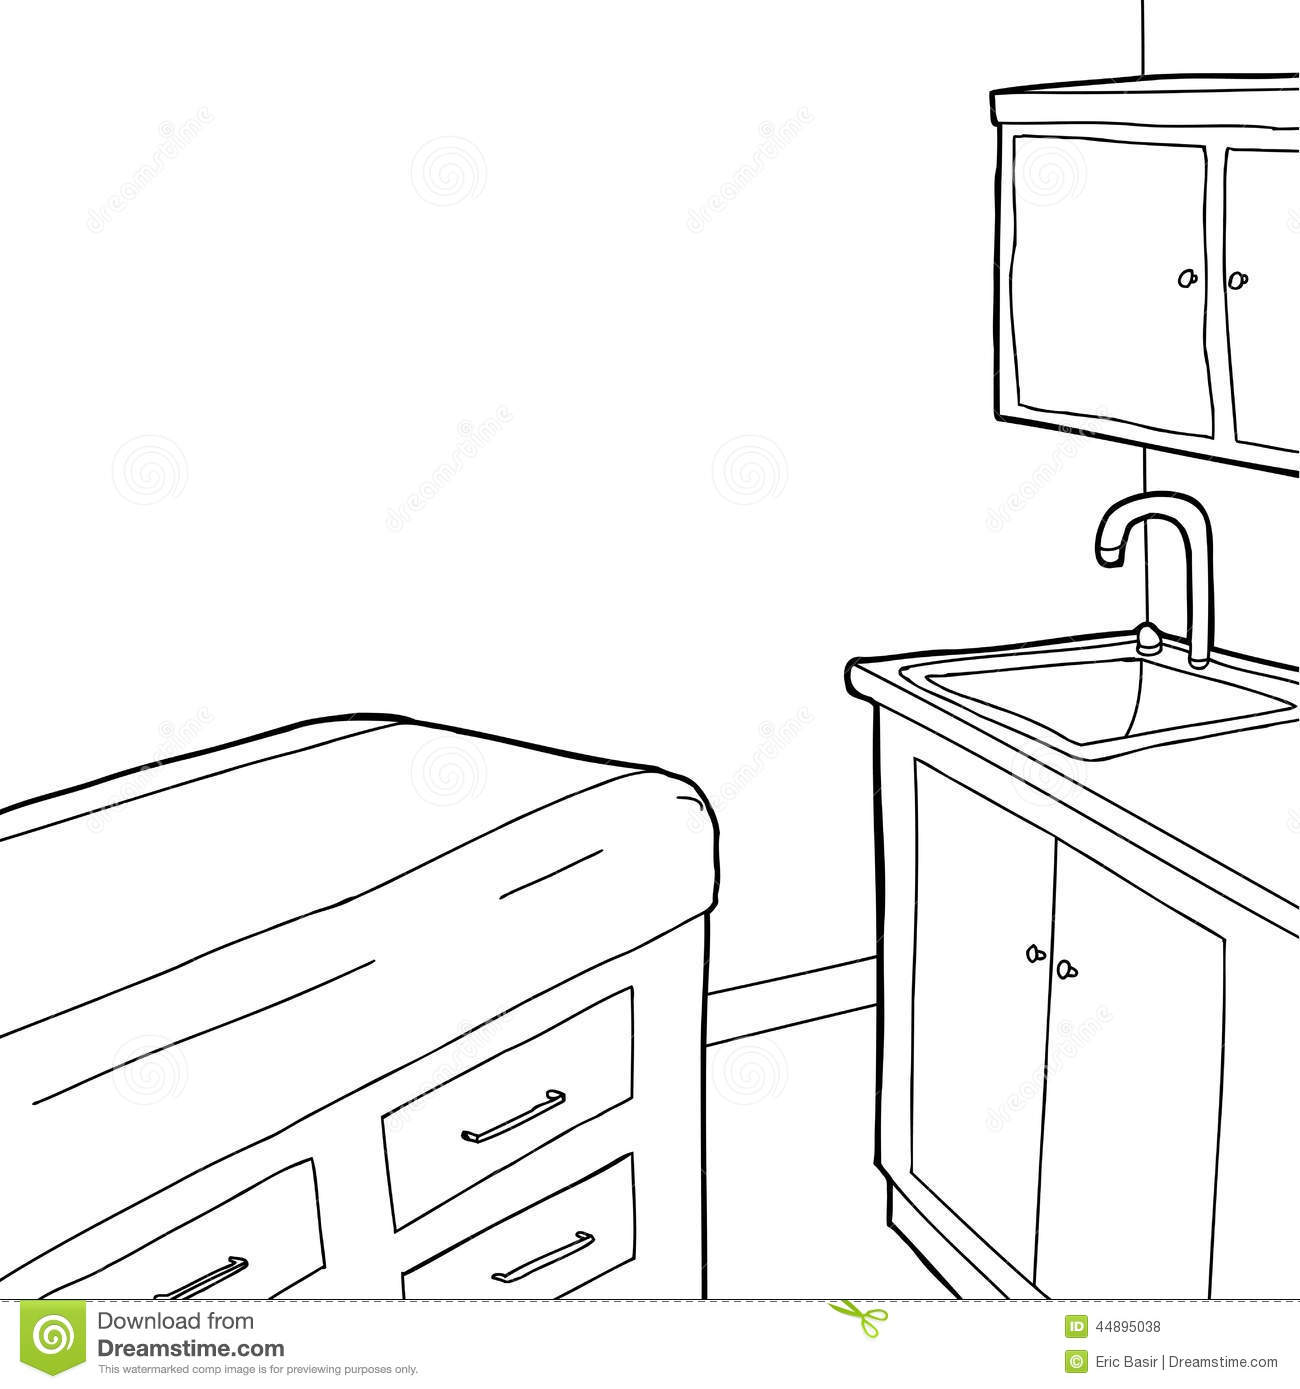 Examination Room Outline stock vector. Image of vector